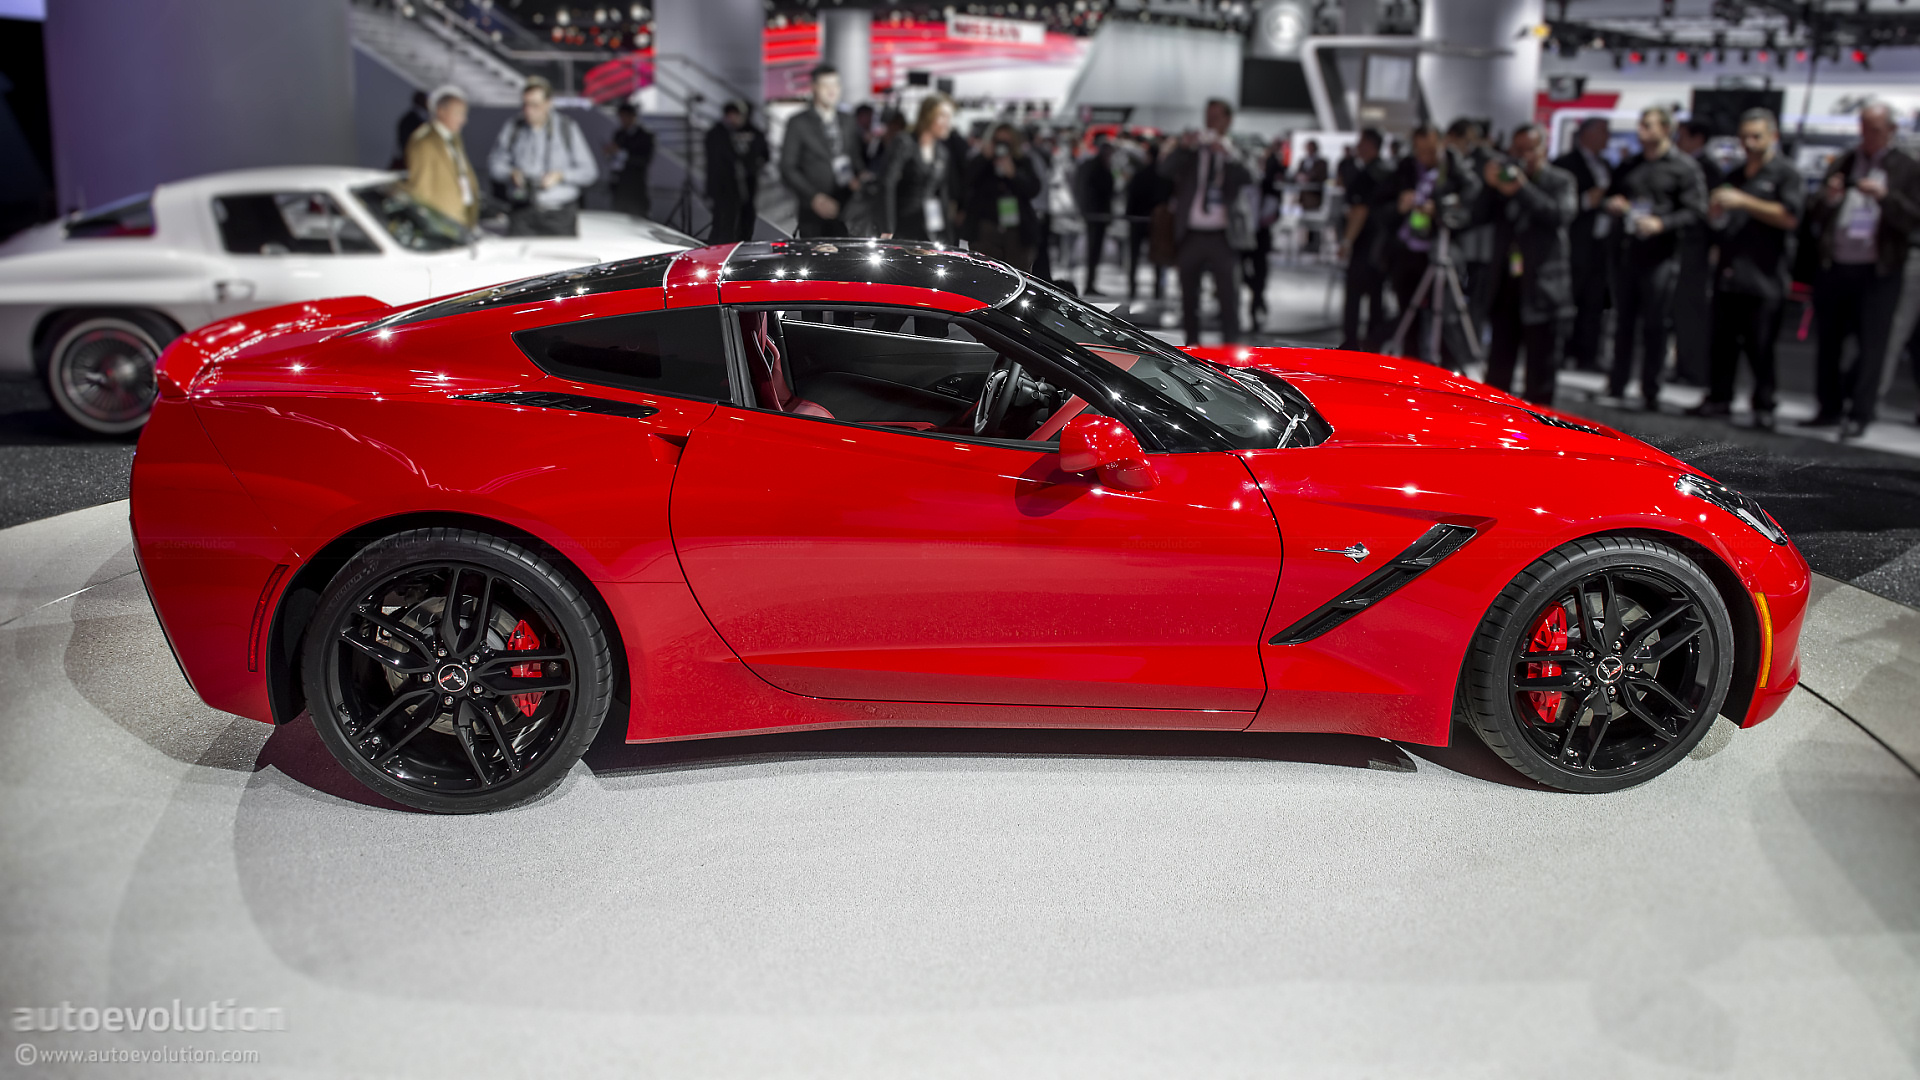 2014 Corvette Stingray Official HP, Torque Figures ...